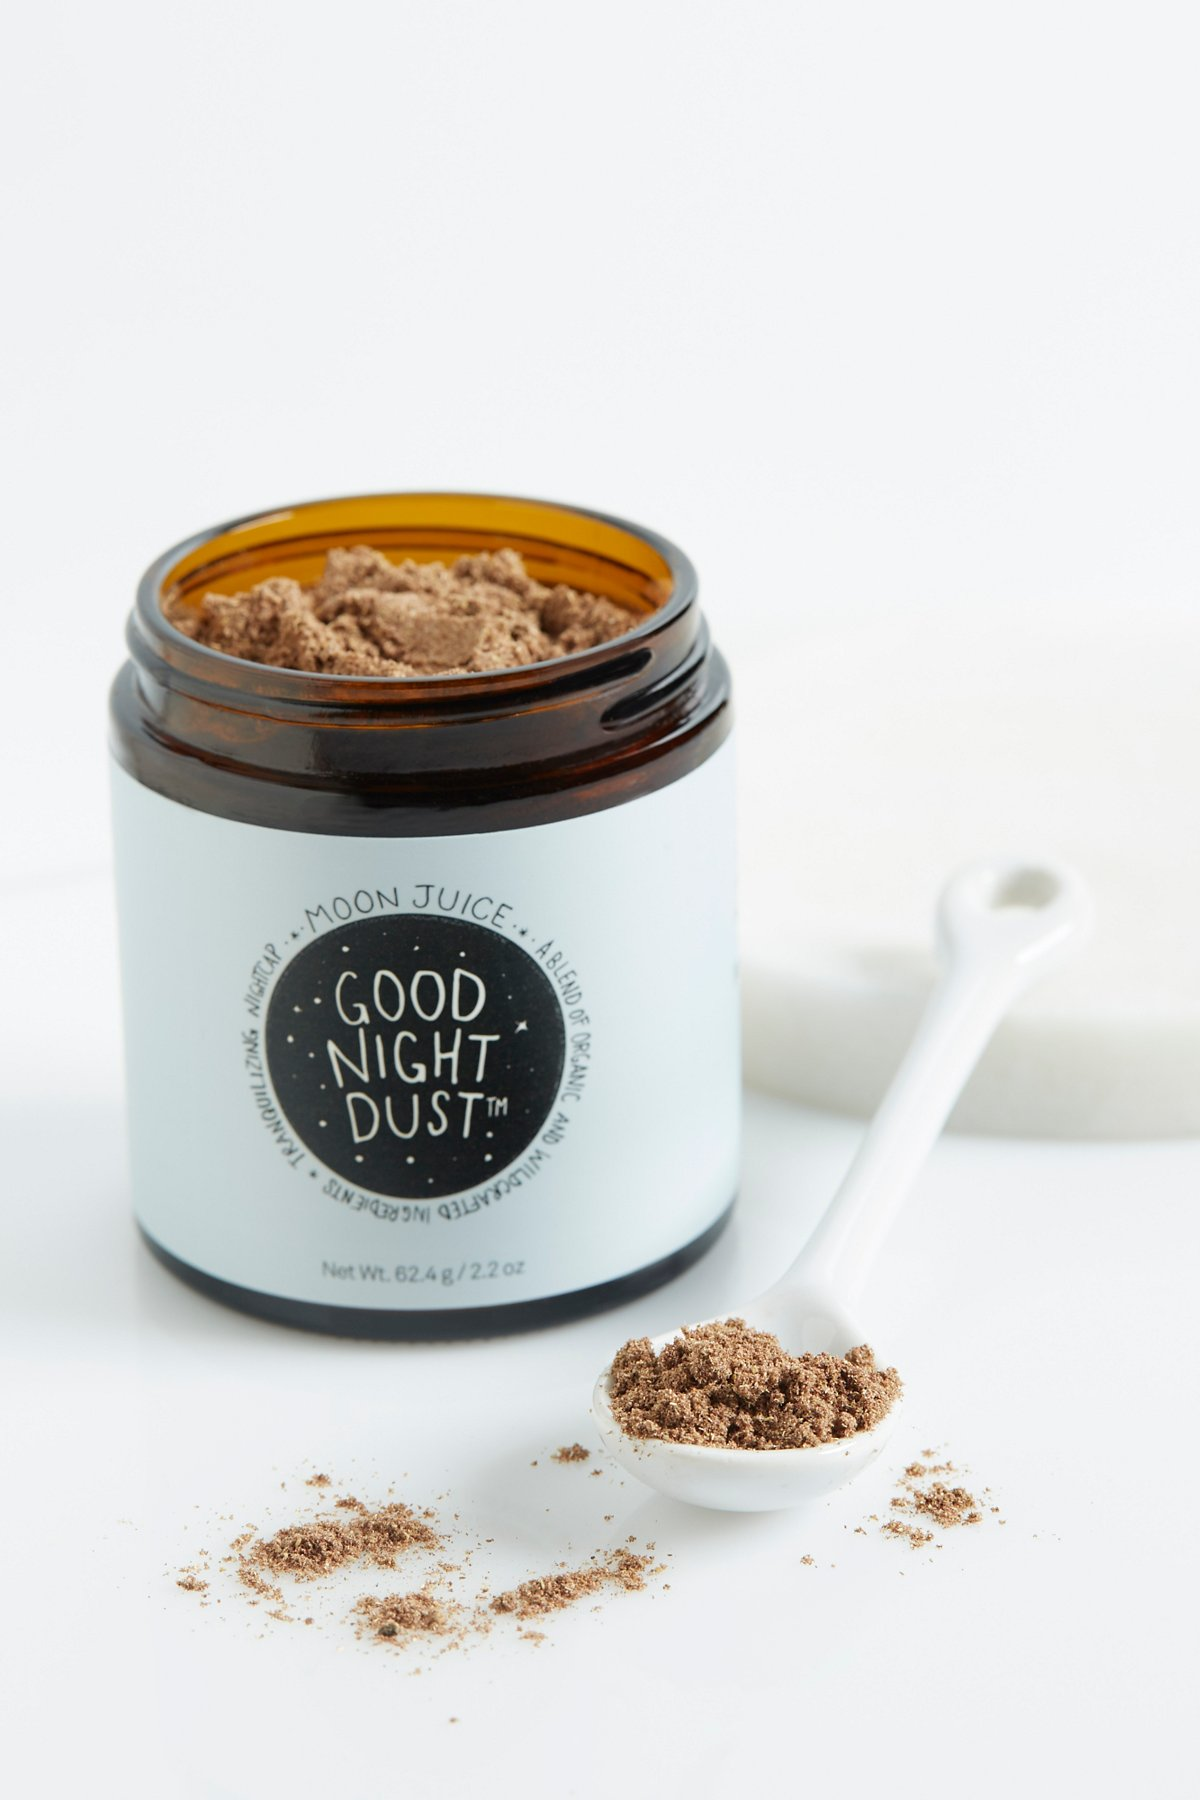 Goodnight Dust by Moon Juice